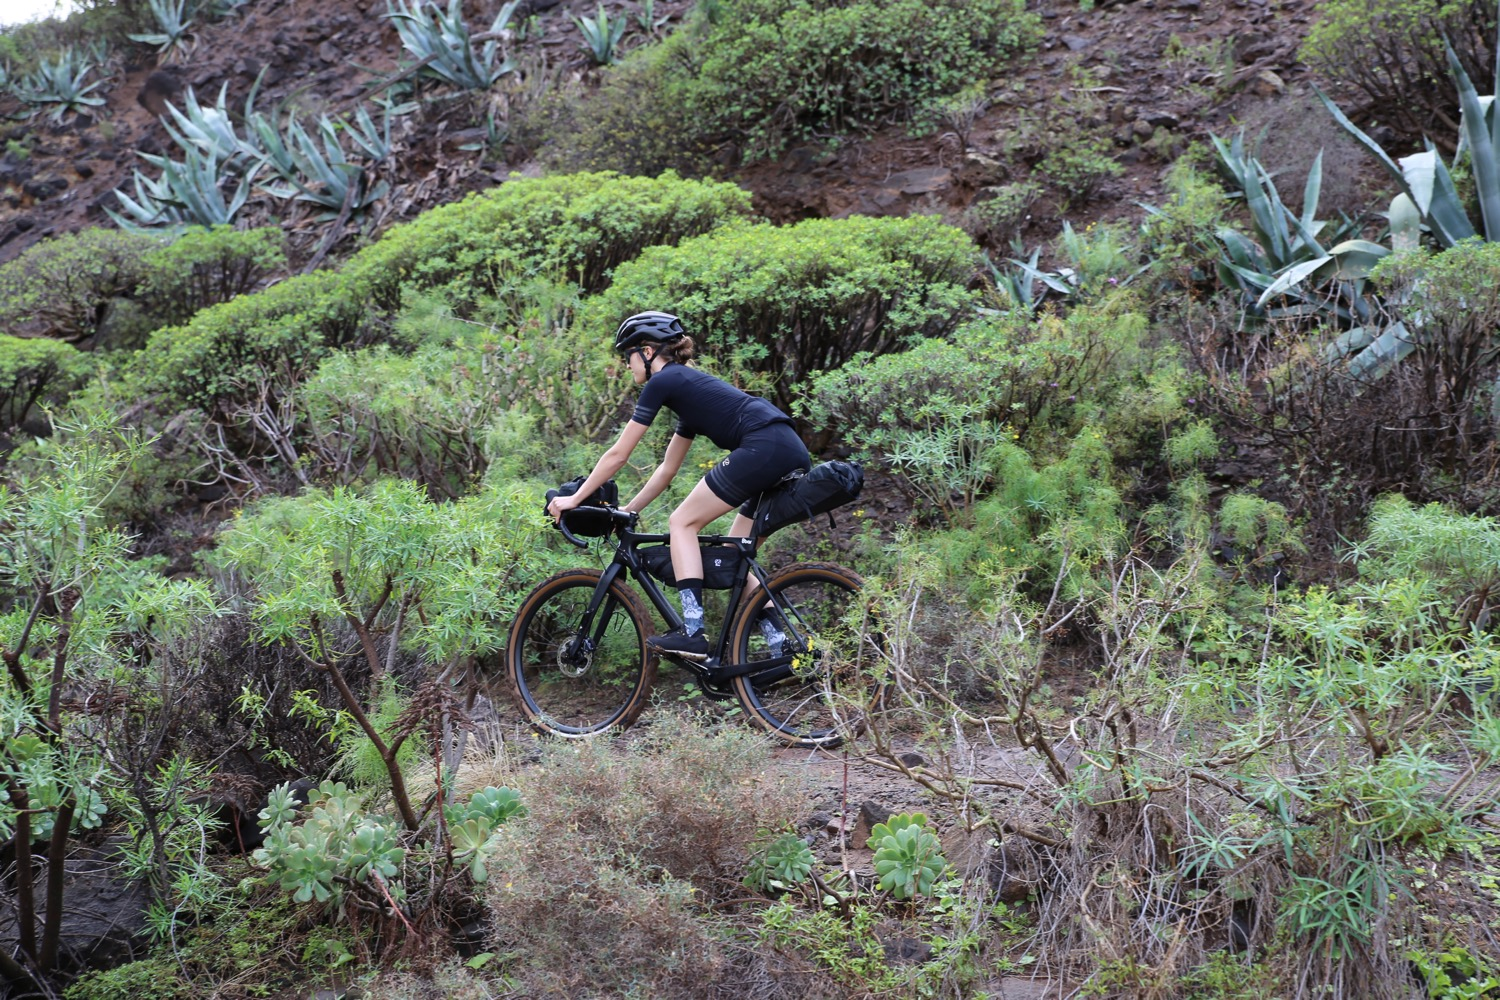 8bar-gran-canaria-015-grunewald-framebag-saddlebag-handelbarbag-bike-mood-gravel-allride